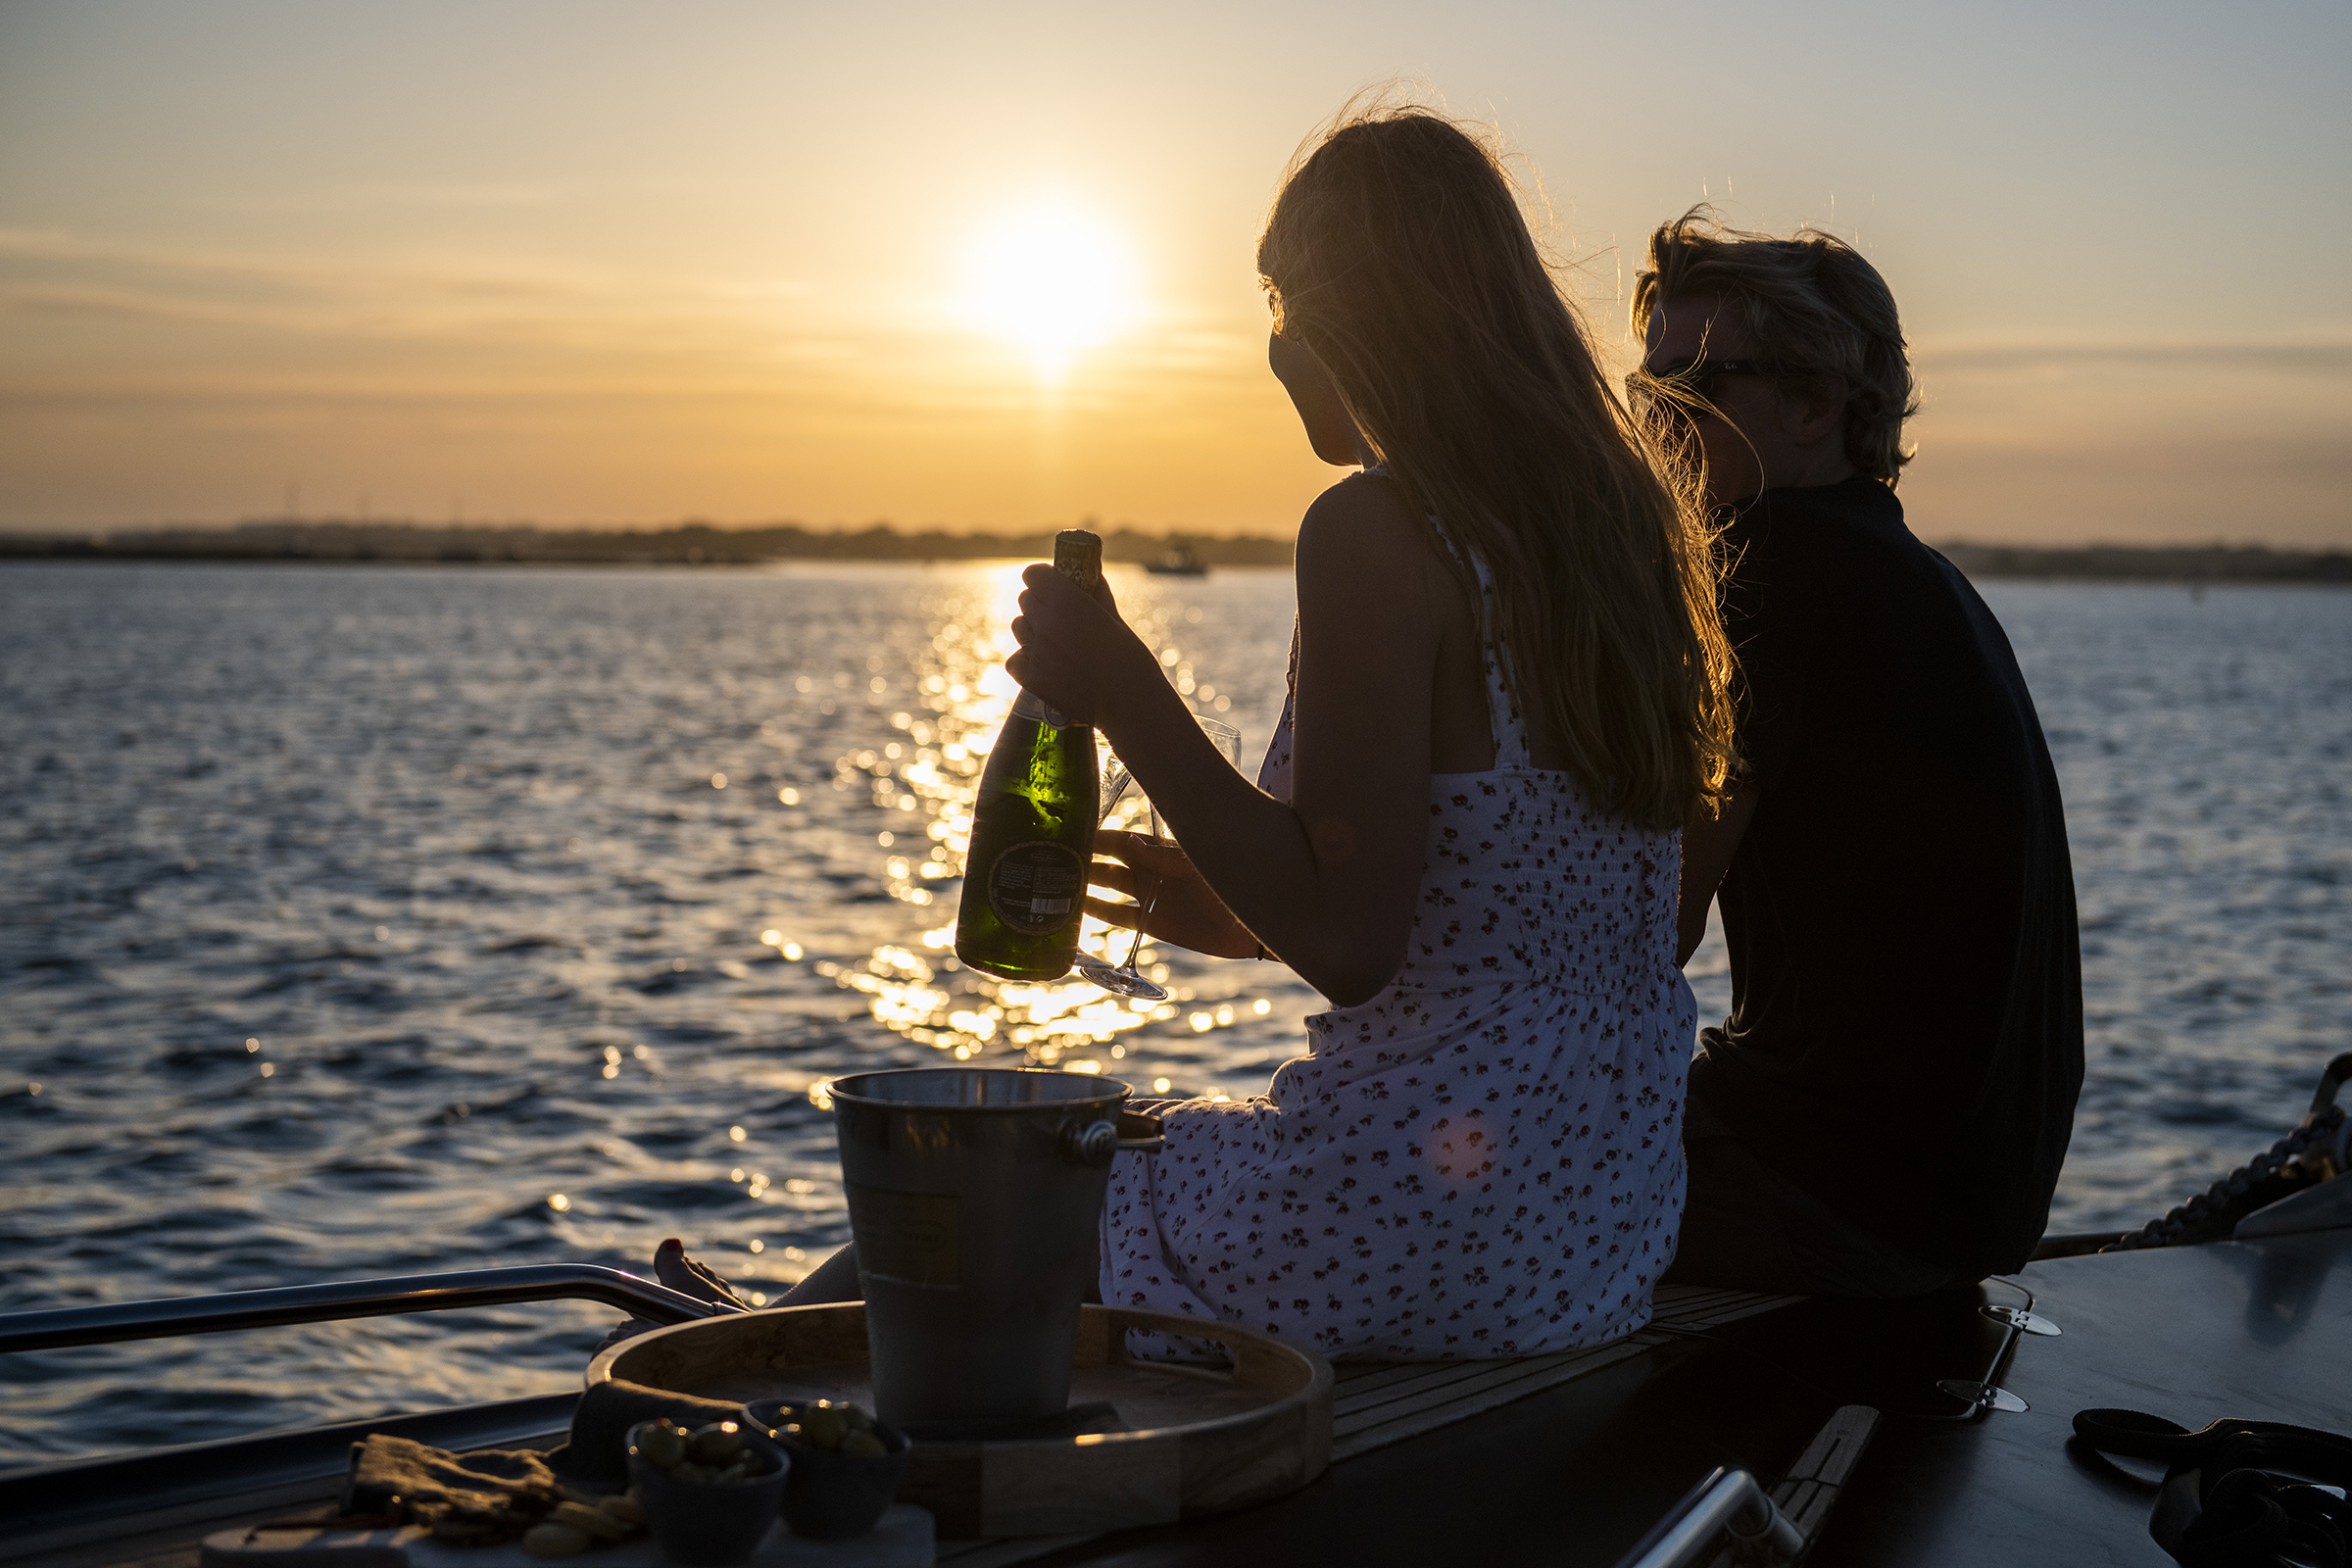 Crack open the champagne on AERO Power Boat Charters Lymington